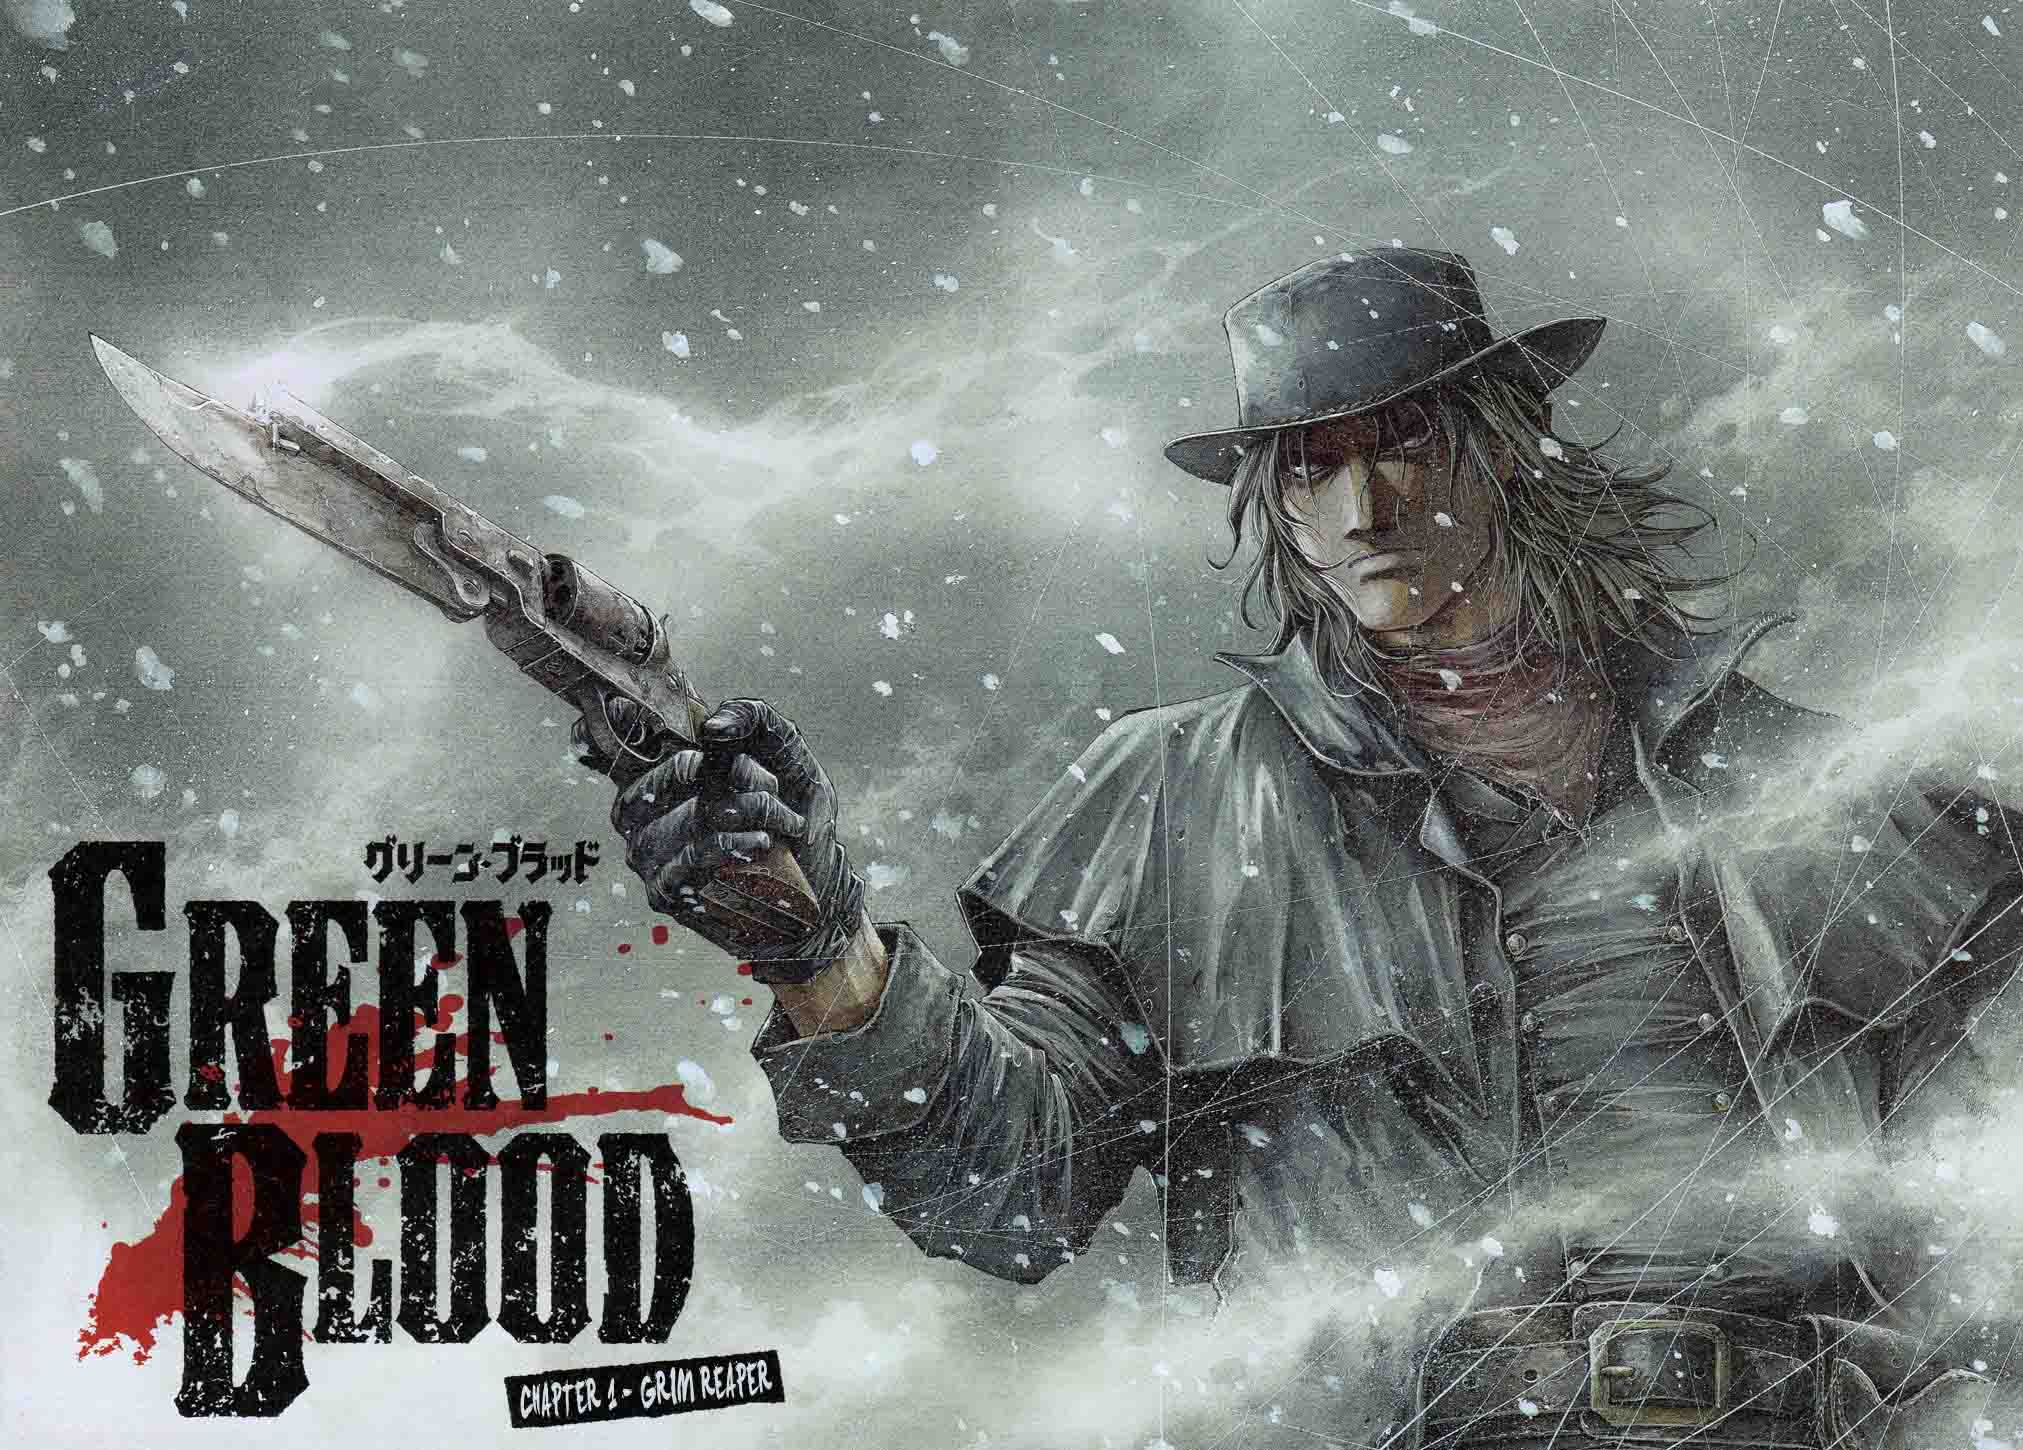 Green Blood Chapter 1